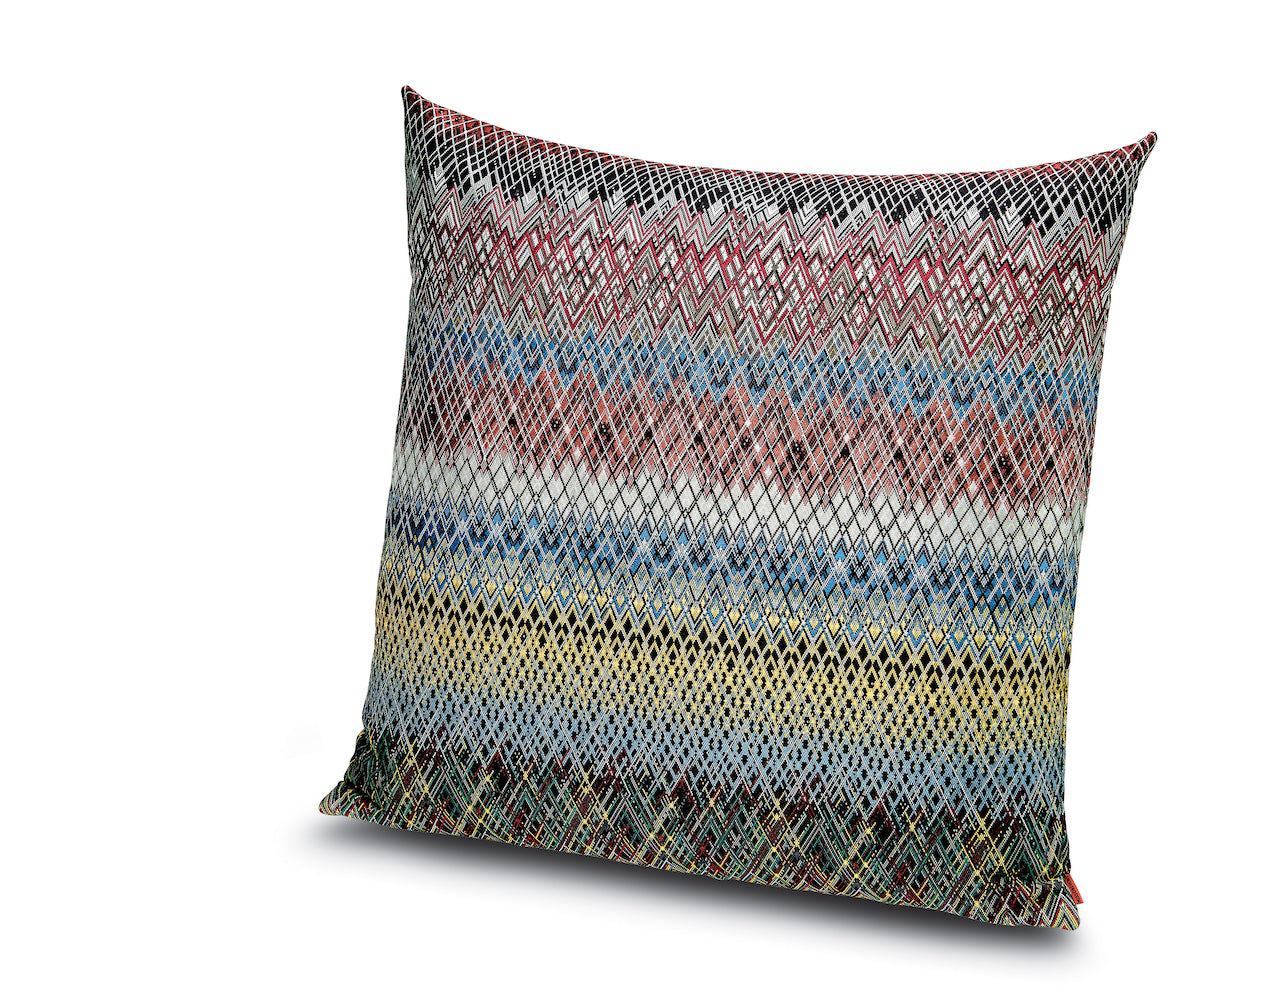 Missoni Weimar Cushion Pillow